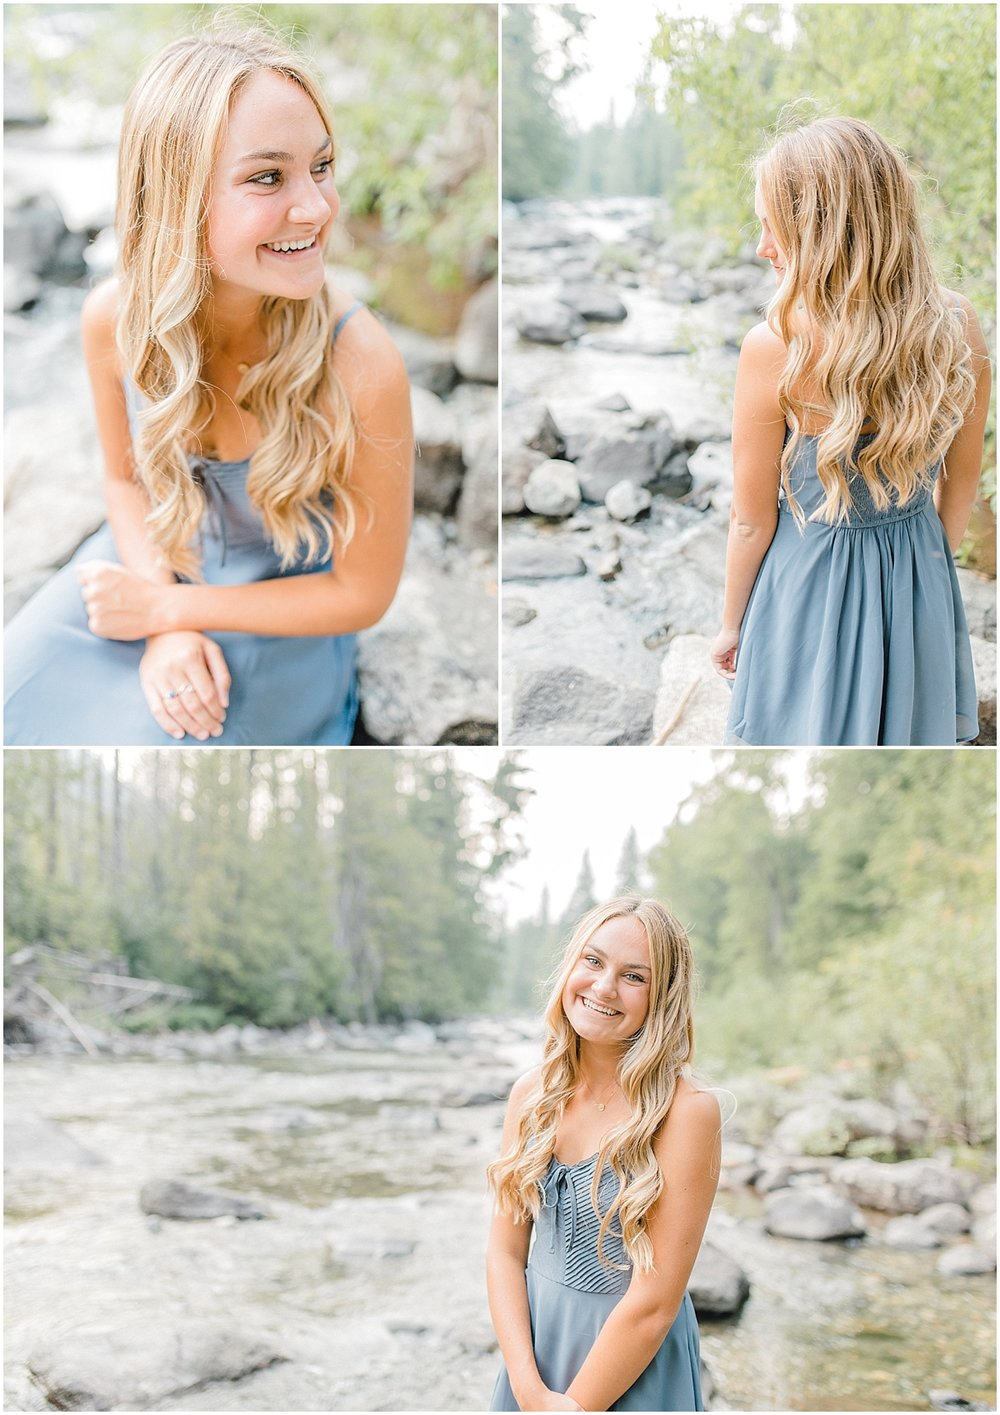 Emma Rose Company | Seattle Wedding and Portrait Photographer PNW | Light and Airy Style | Senior Style Guide What to Wear | Senior Portraits Leavenworth, Washington | Kindred Presets Film Style_0005.jpg